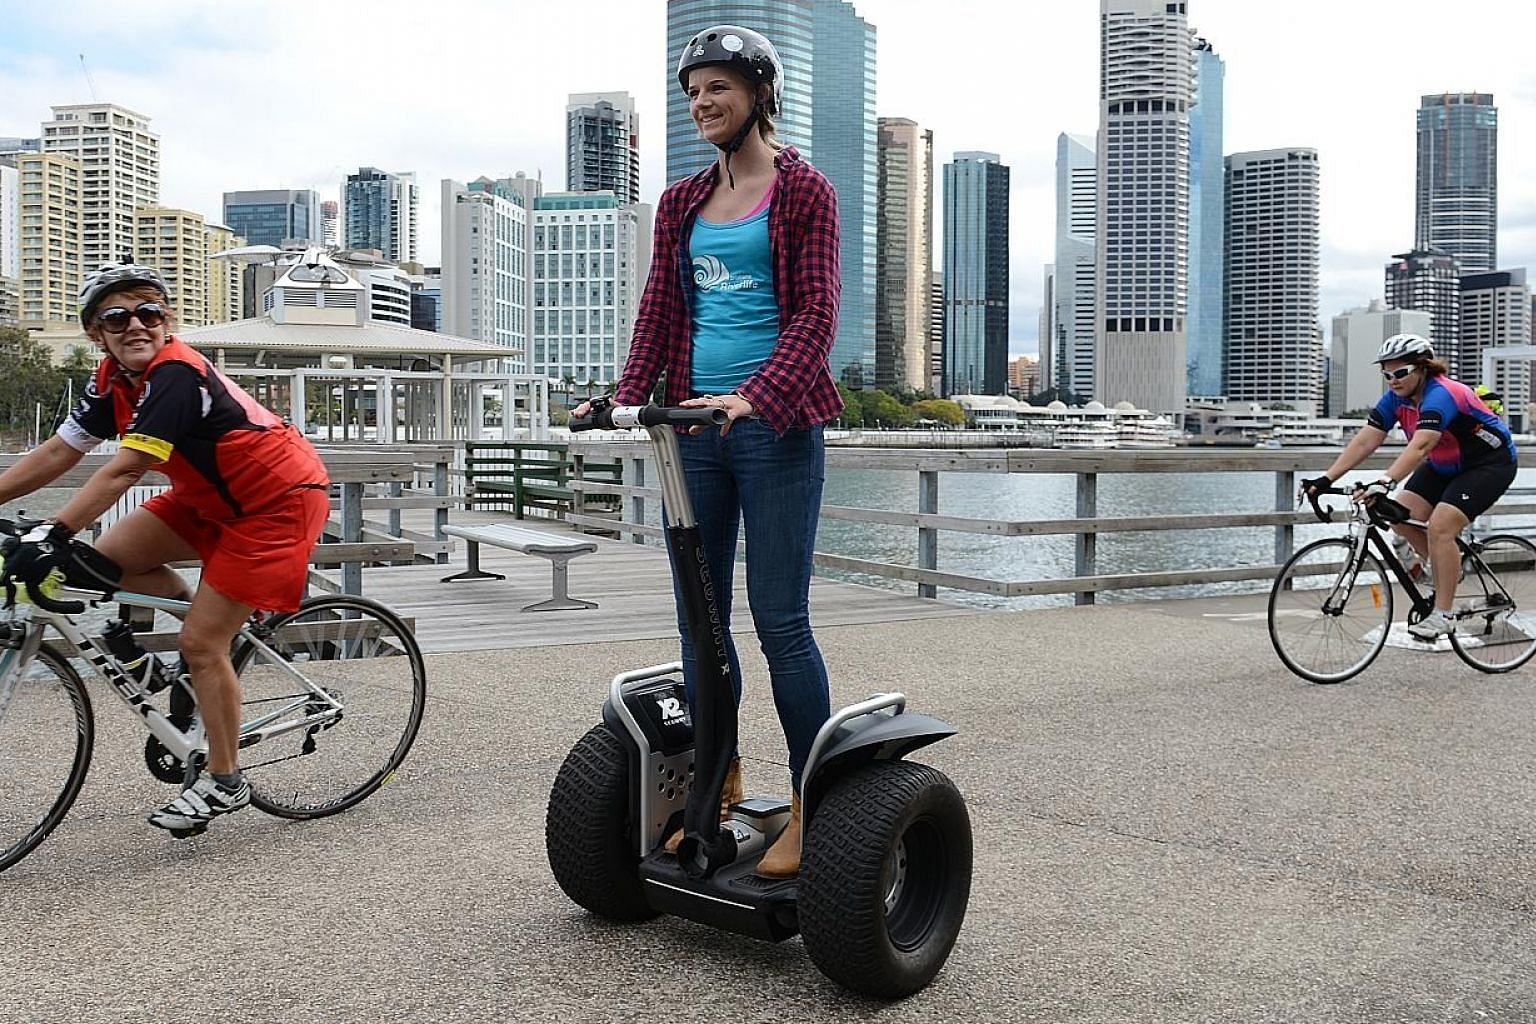 The Segway was a technological marvel, says the writer, but it was impressive without being particularly useful.